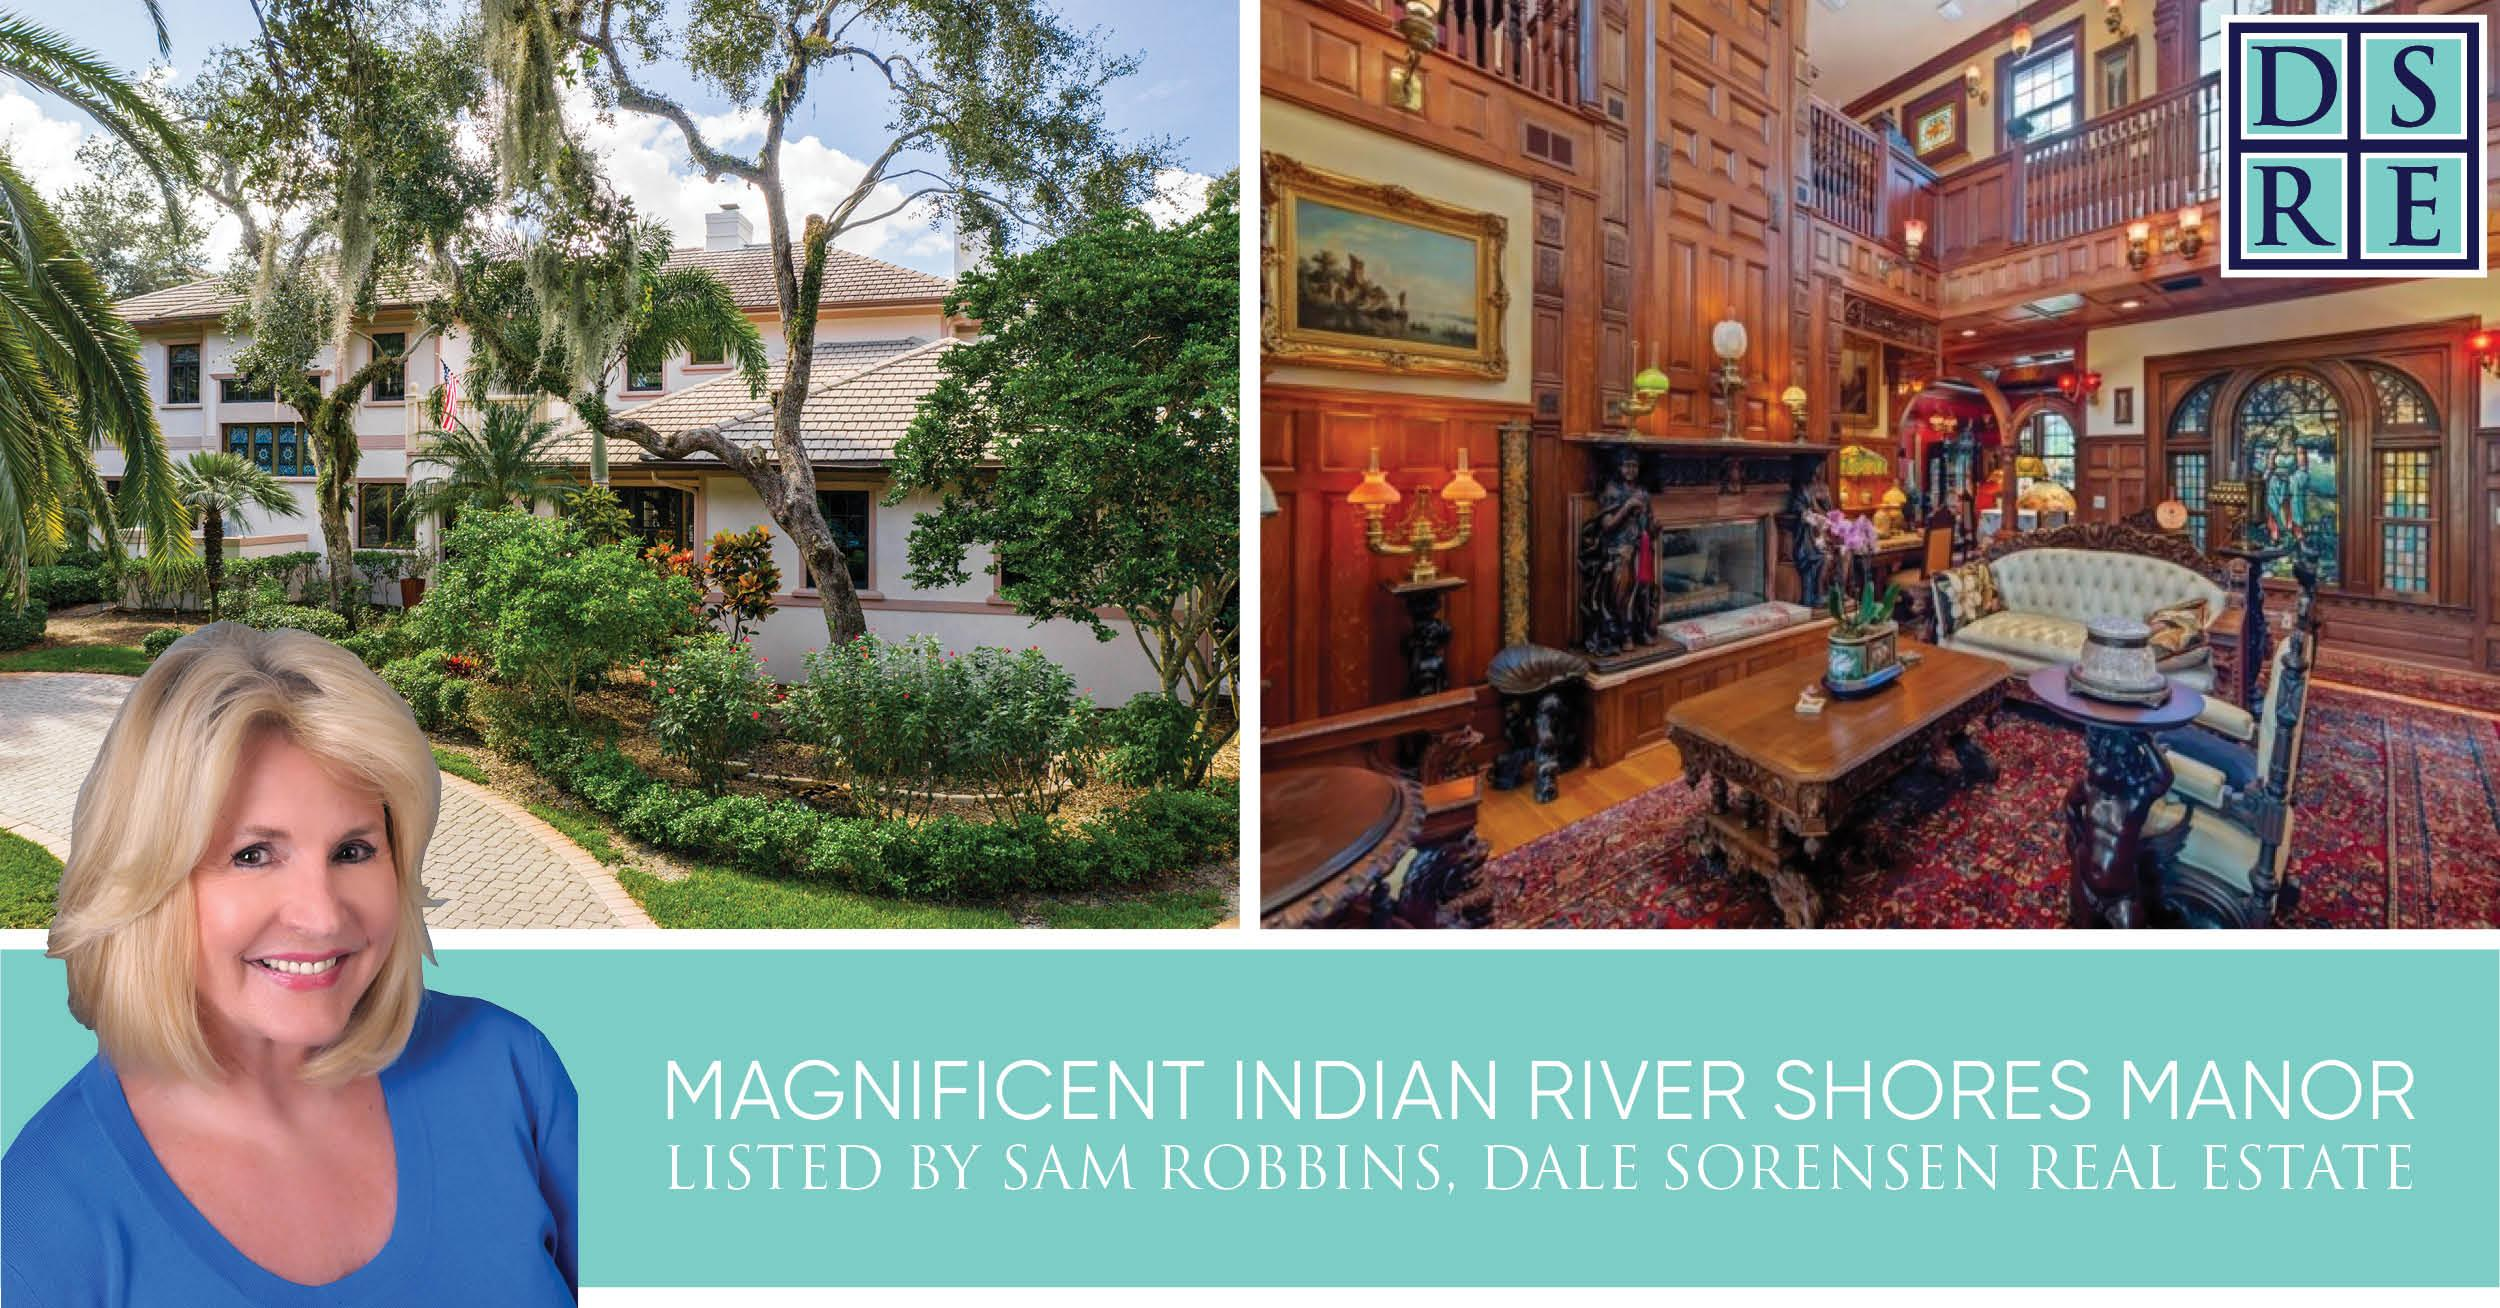 Magnificent Indian River Shores Manor listed by Sam Robbins, Dale Sorensen Real Estate